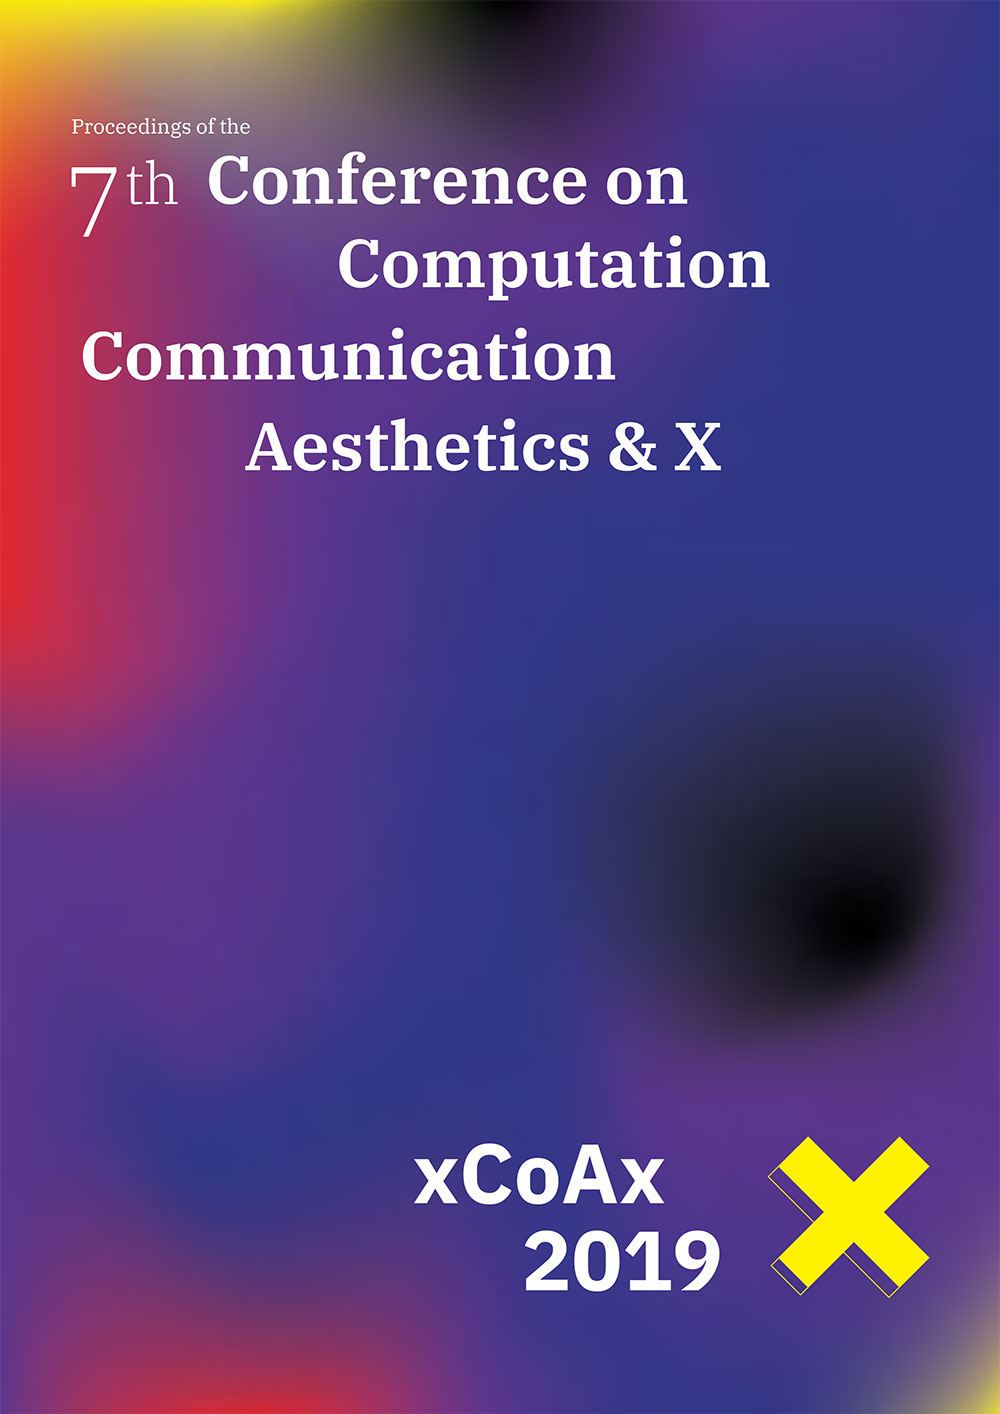 Cover of the Proceedings of xCoAx 2019